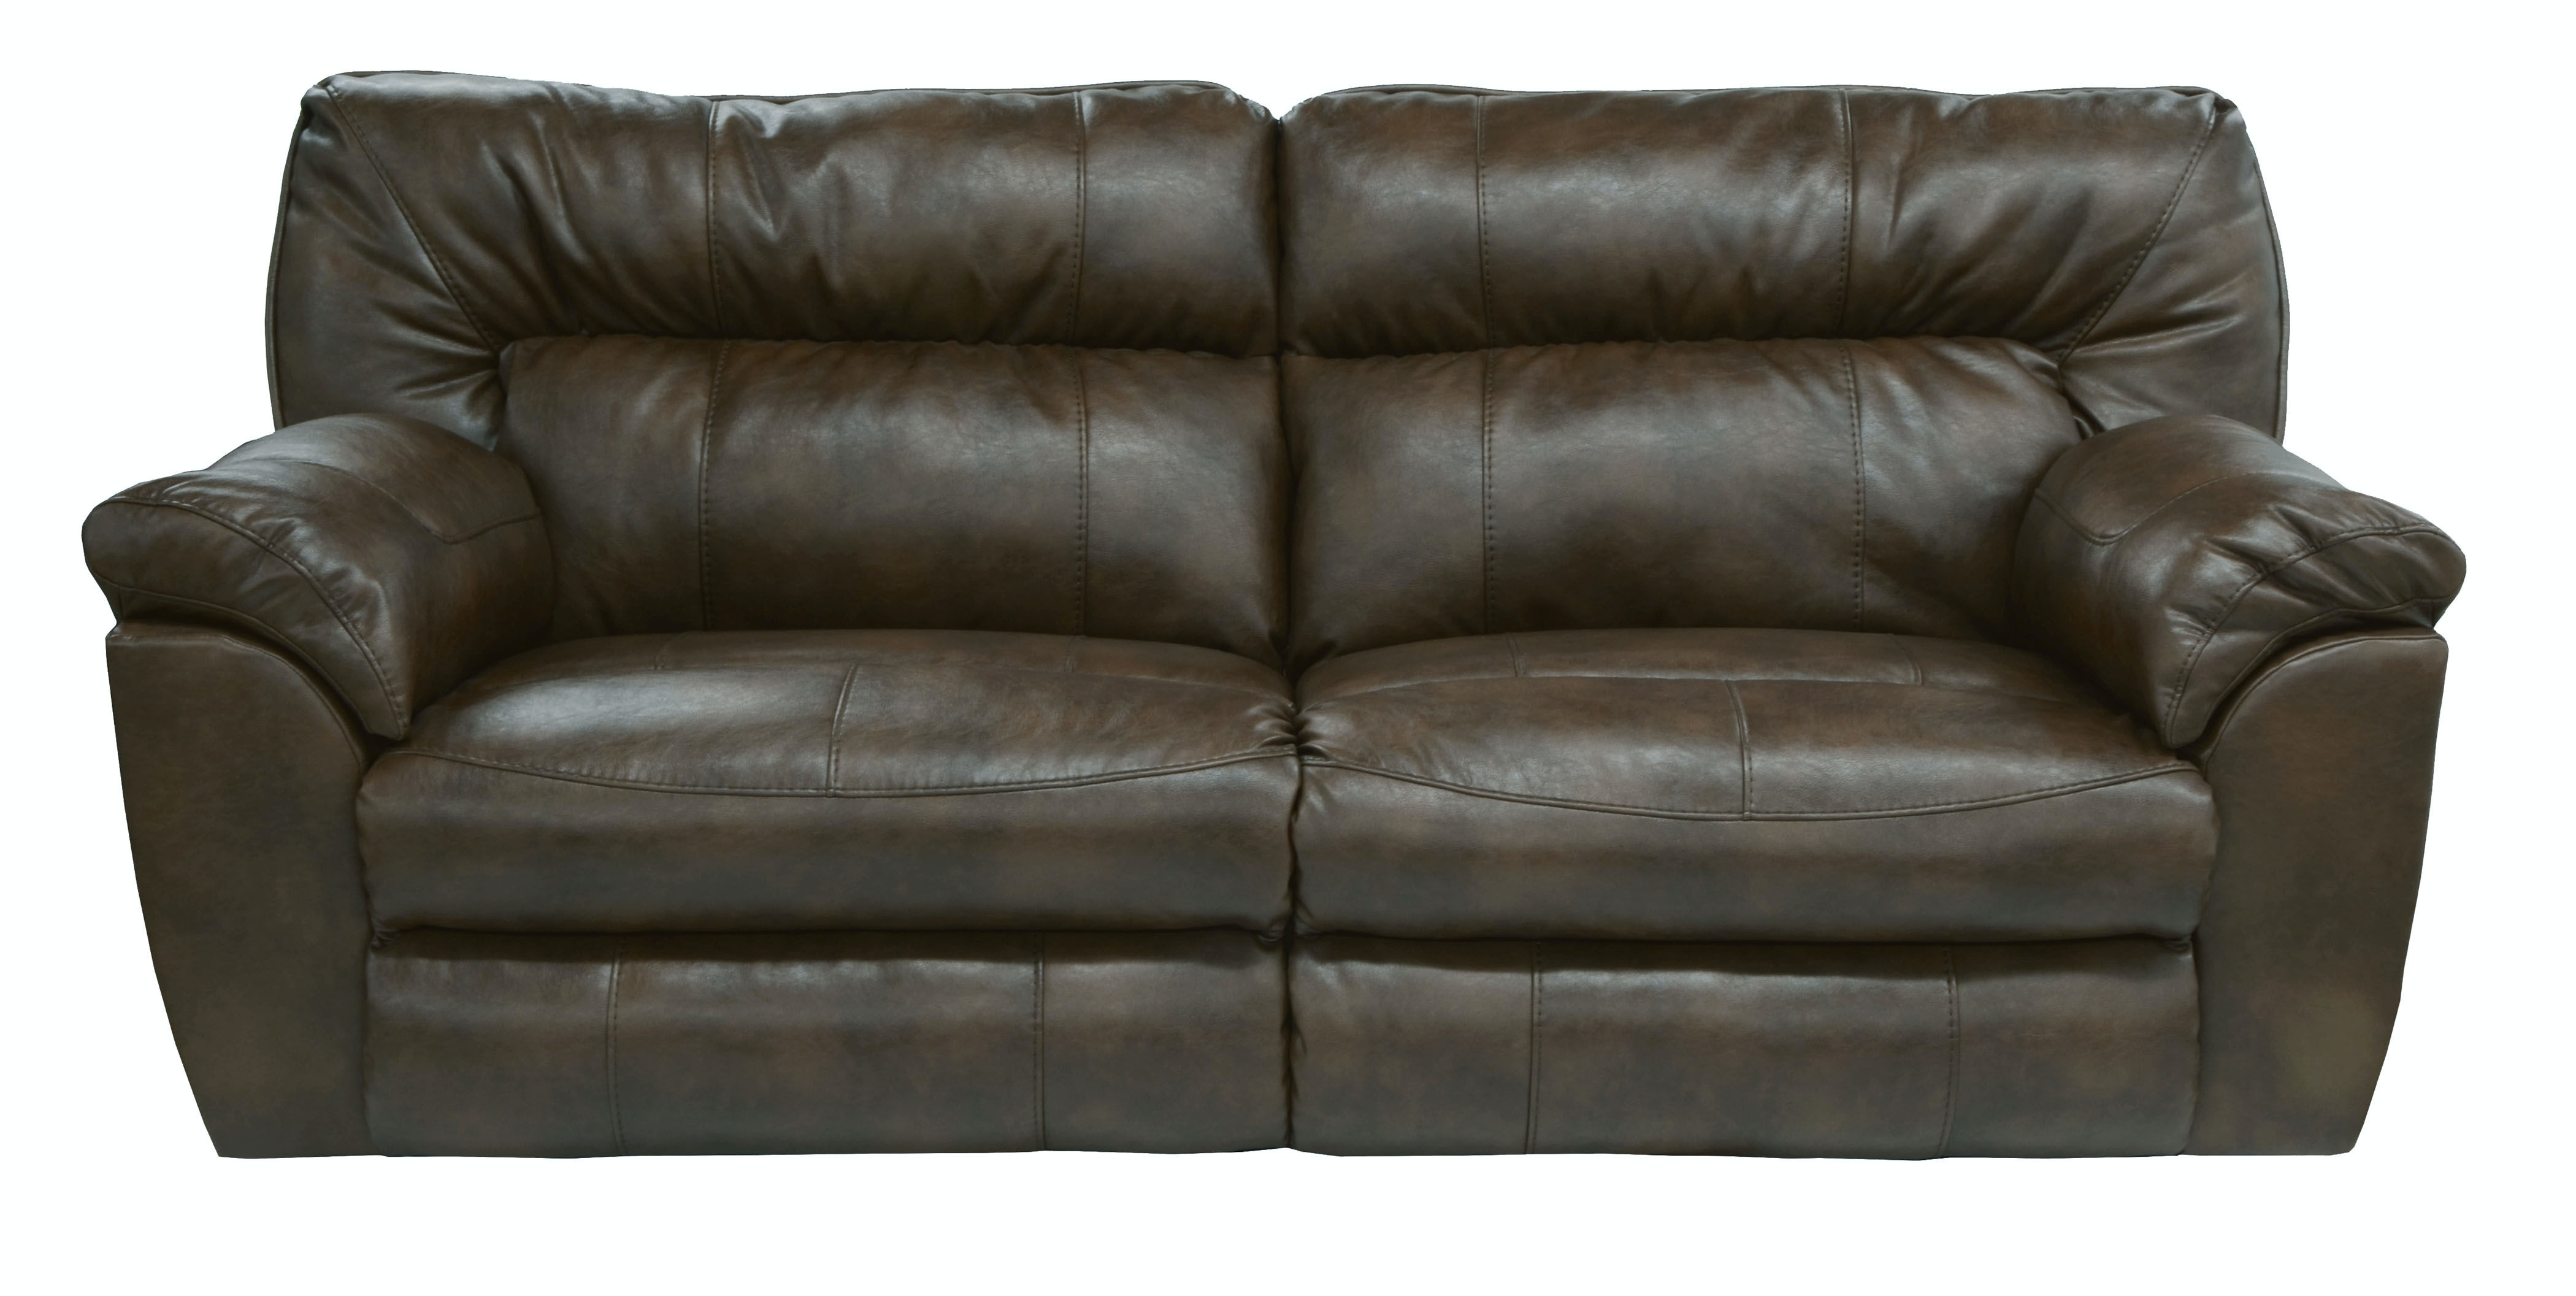 Delicieux Catnapper Furniture Extra Wide Reclining Sofa 4041